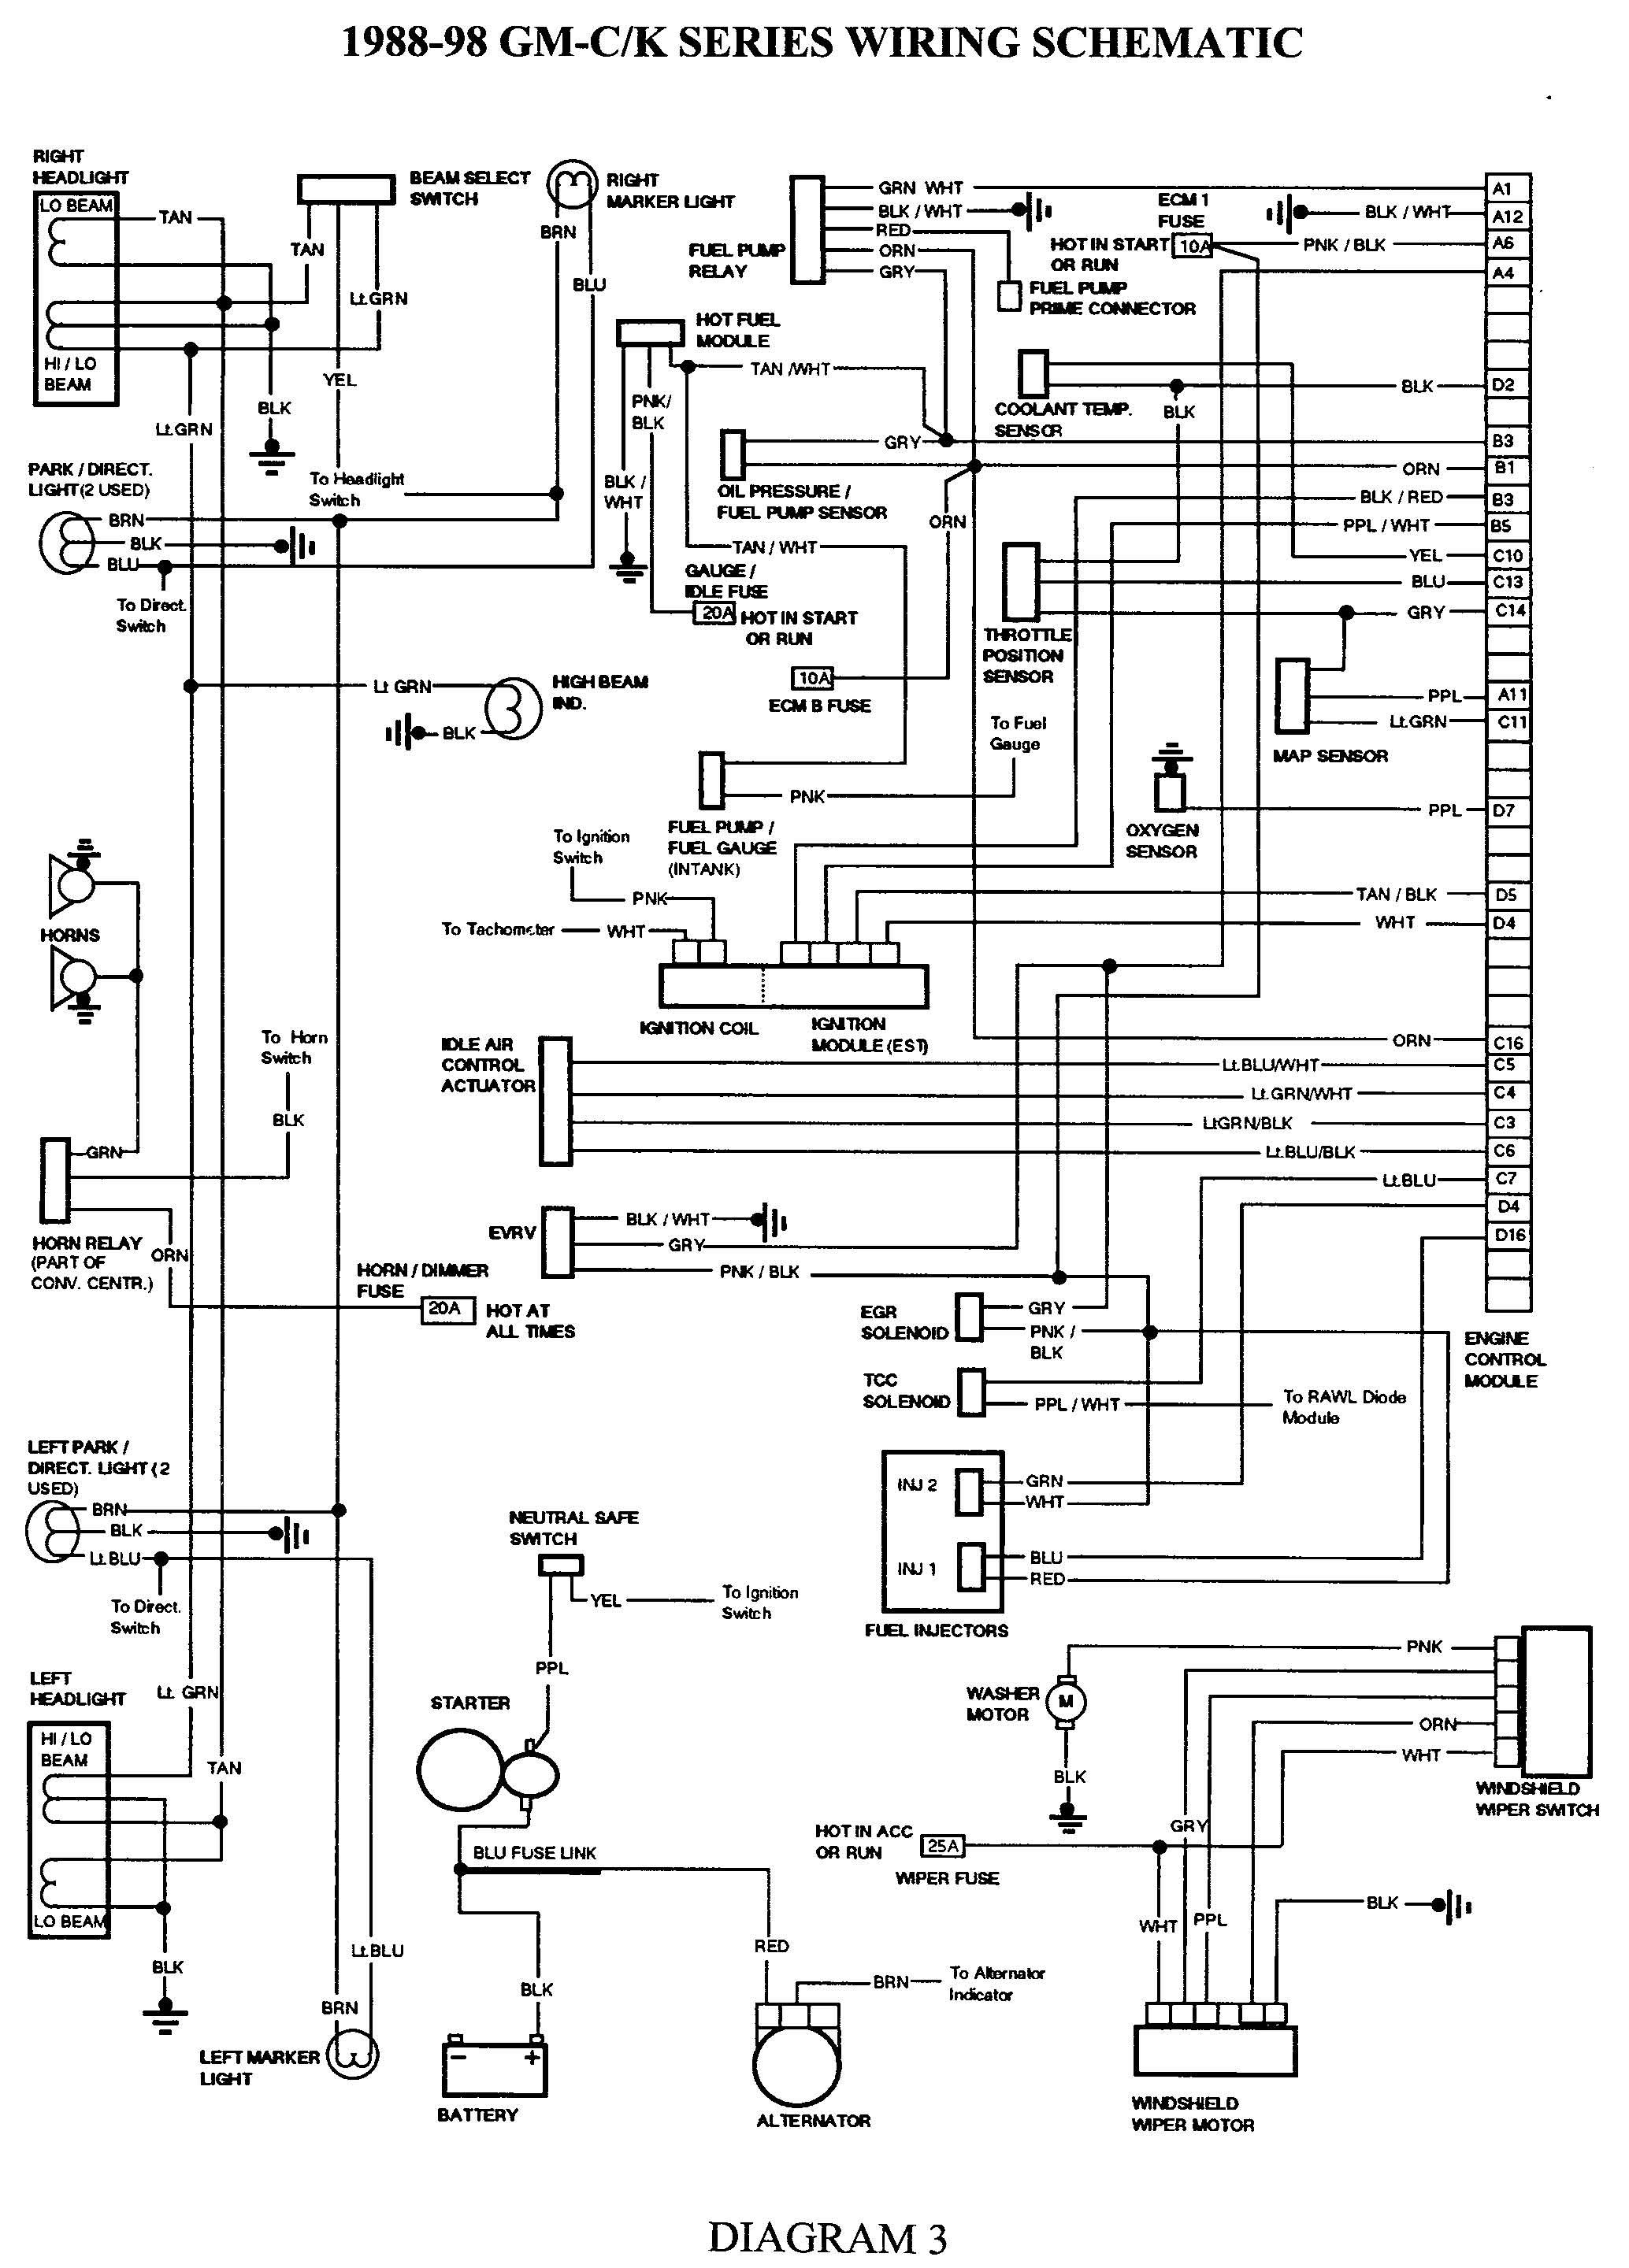 b2f2e5dbdc07dada83ef514f6d4ce3d4 gmc truck wiring diagrams on gm wiring harness diagram 88 98 kc chevy wiring harness diagram at gsmx.co